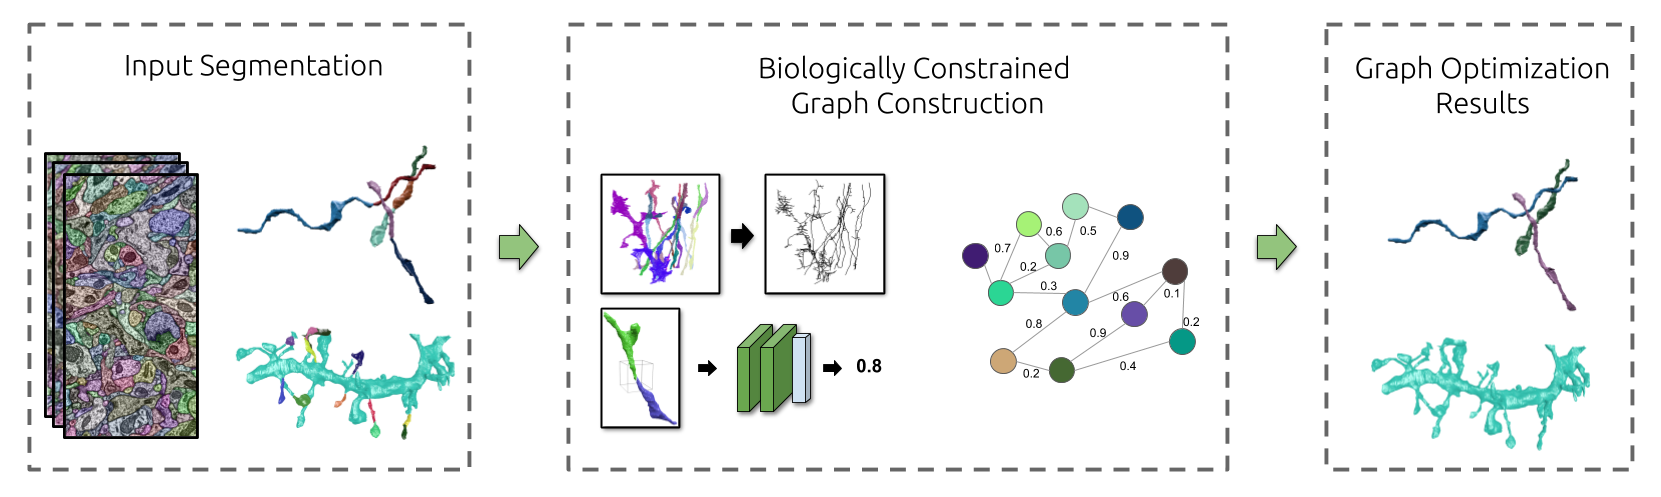 Biologically-Constrained Graphs for Global Connectomics Reconstruction